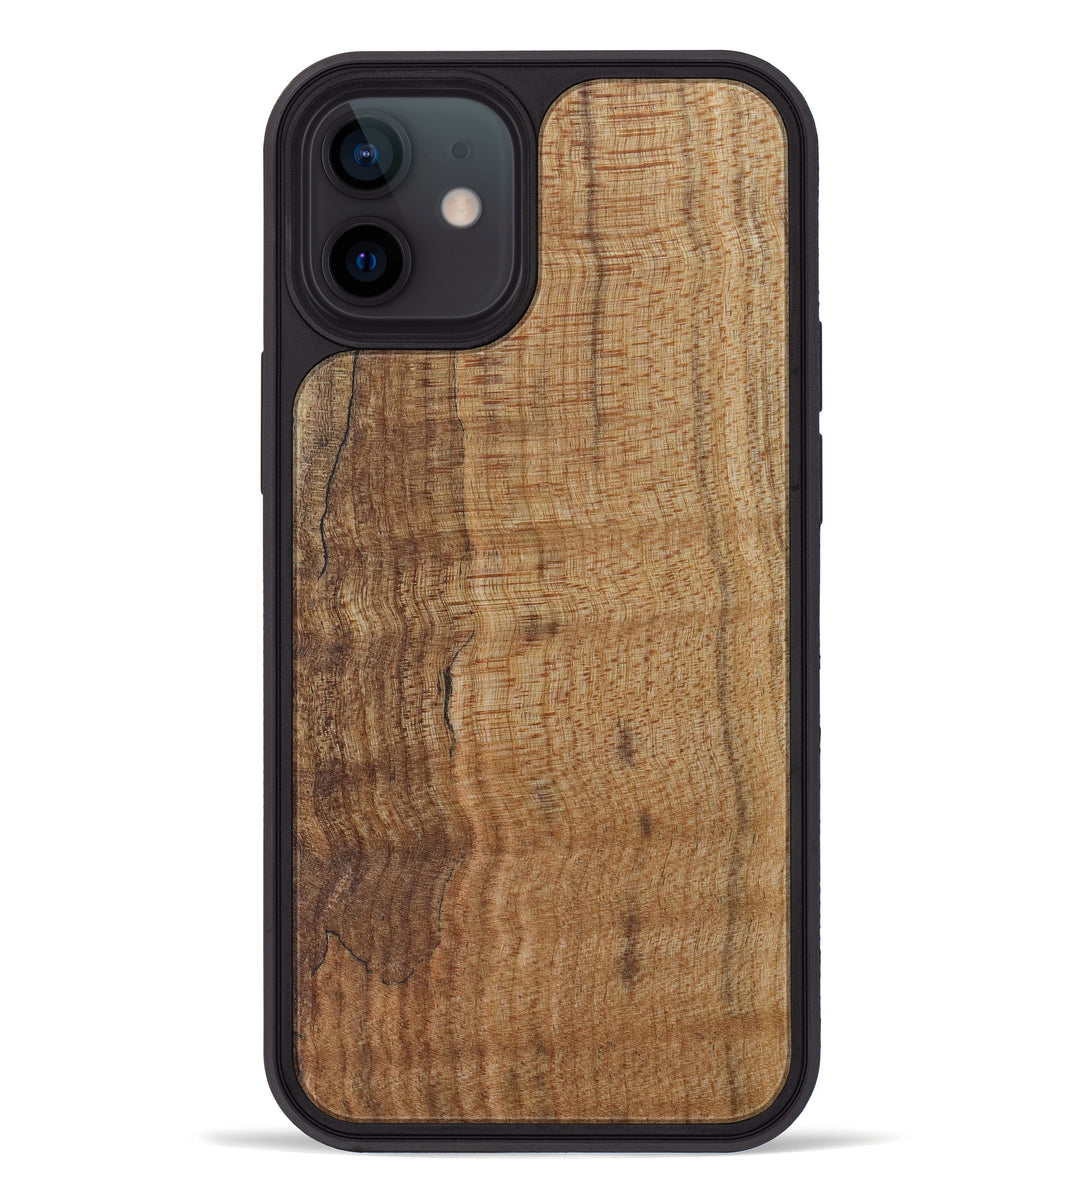 iPhone 12 Burl Wood Phone Case - Hollie (Maple Burl, 420052)